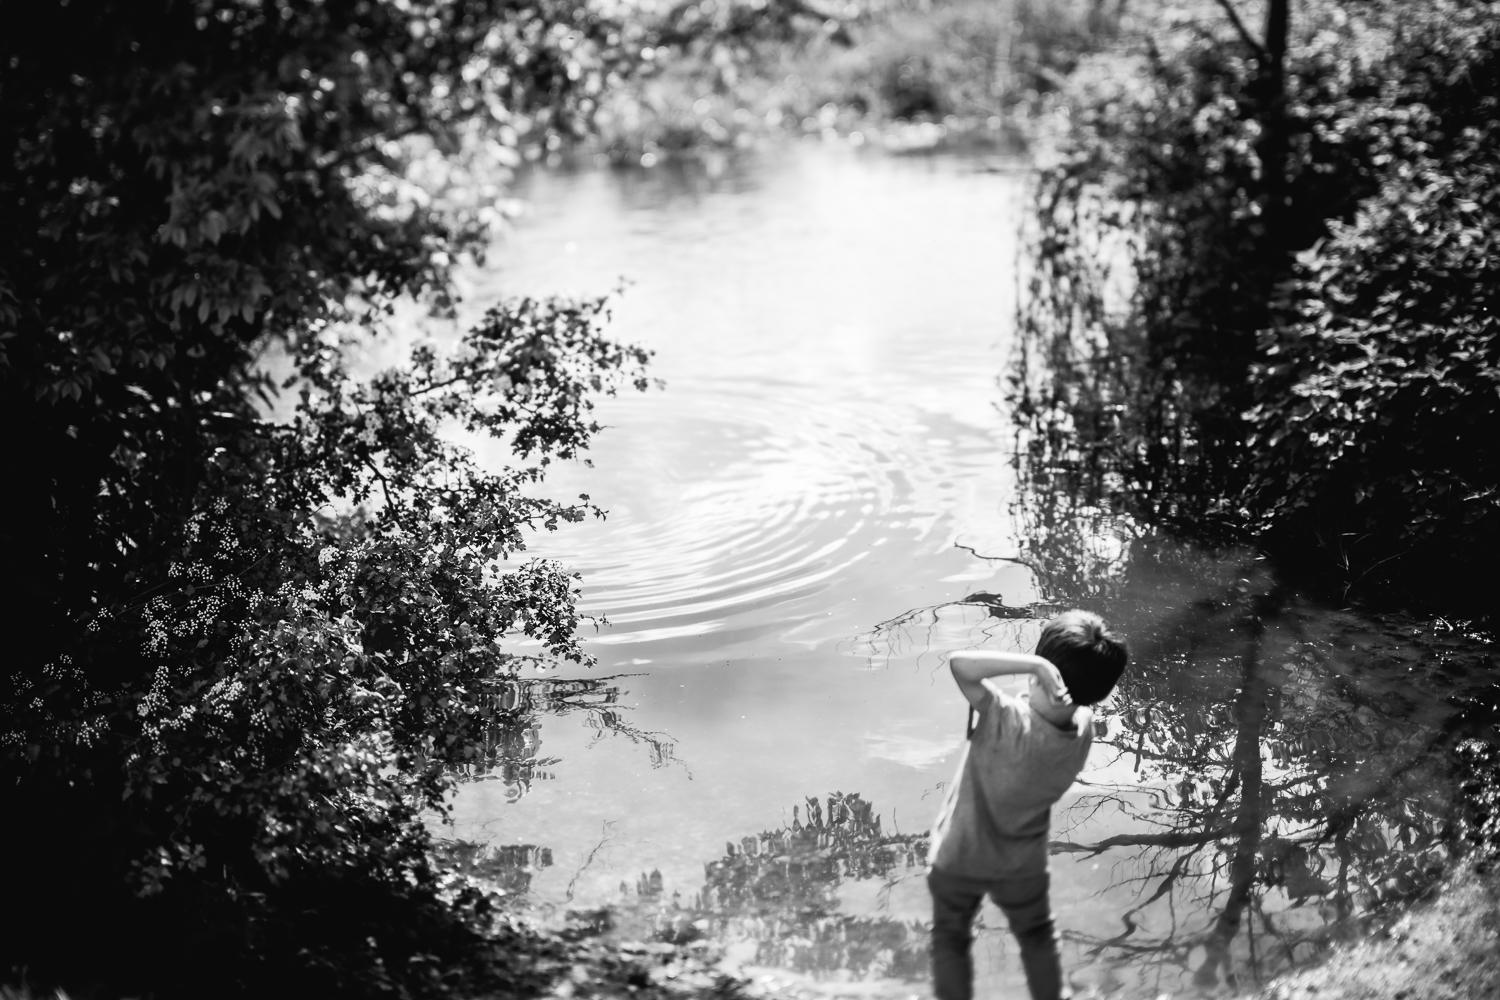 Child throwing stones in a river black and white photograph